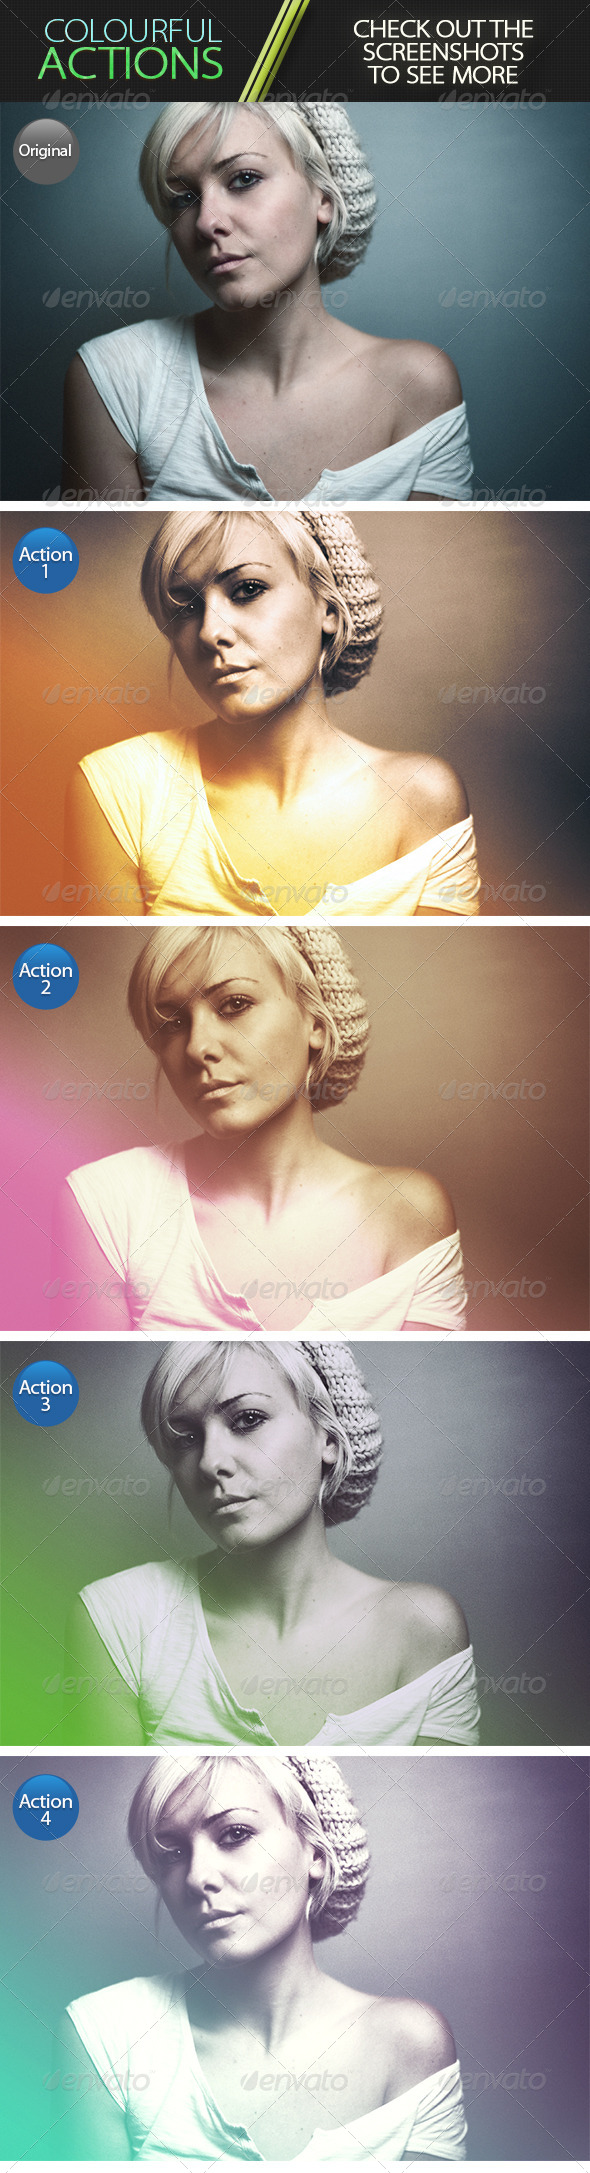 GraphicRiver Colourful Actions 6958502